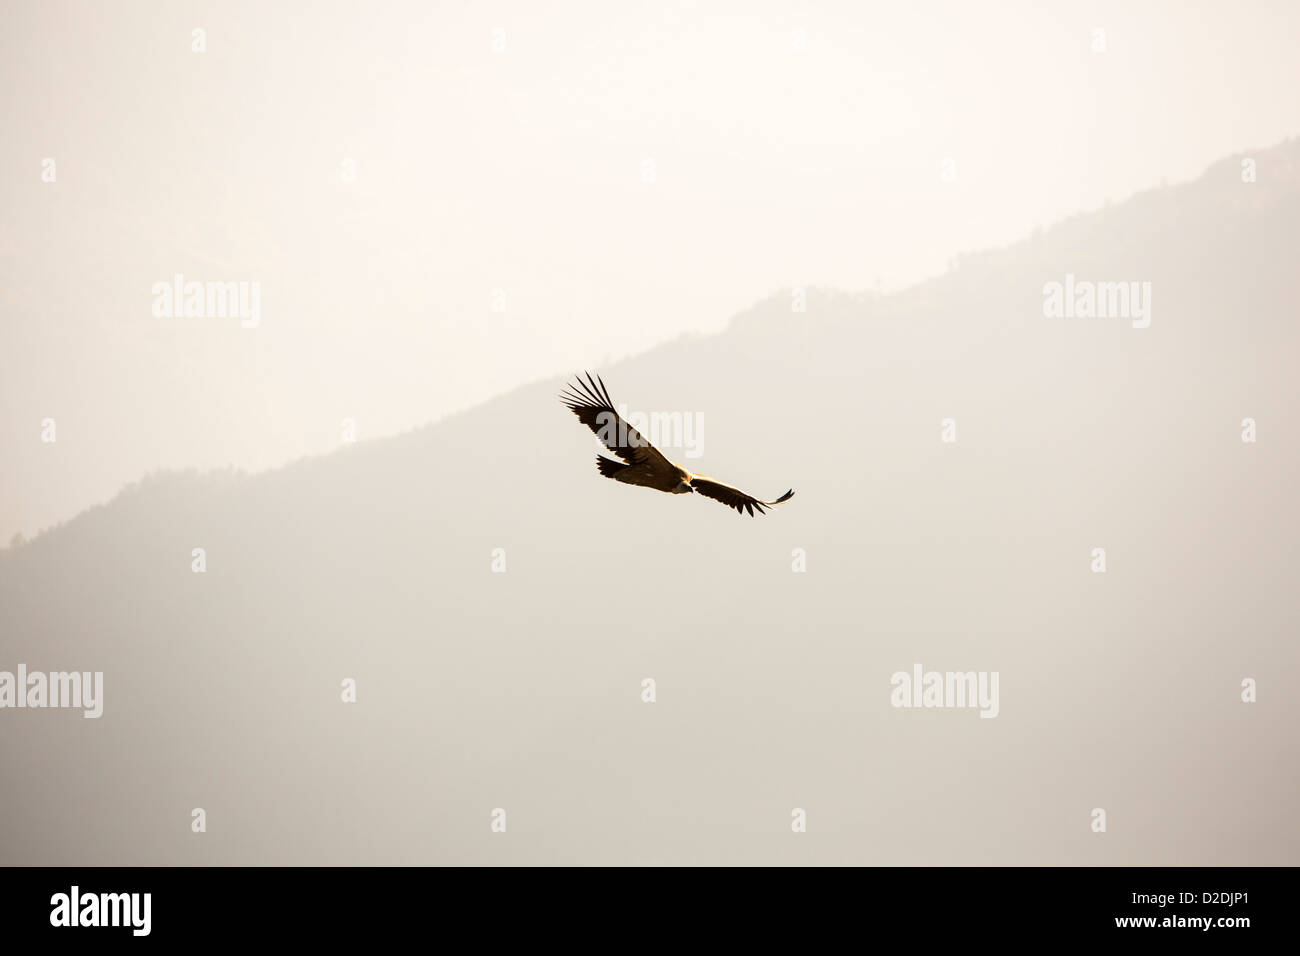 A Griffon Vulture, (Gyps fulvus) circling over the Himalayan mountains, Nepal. - Stock Image